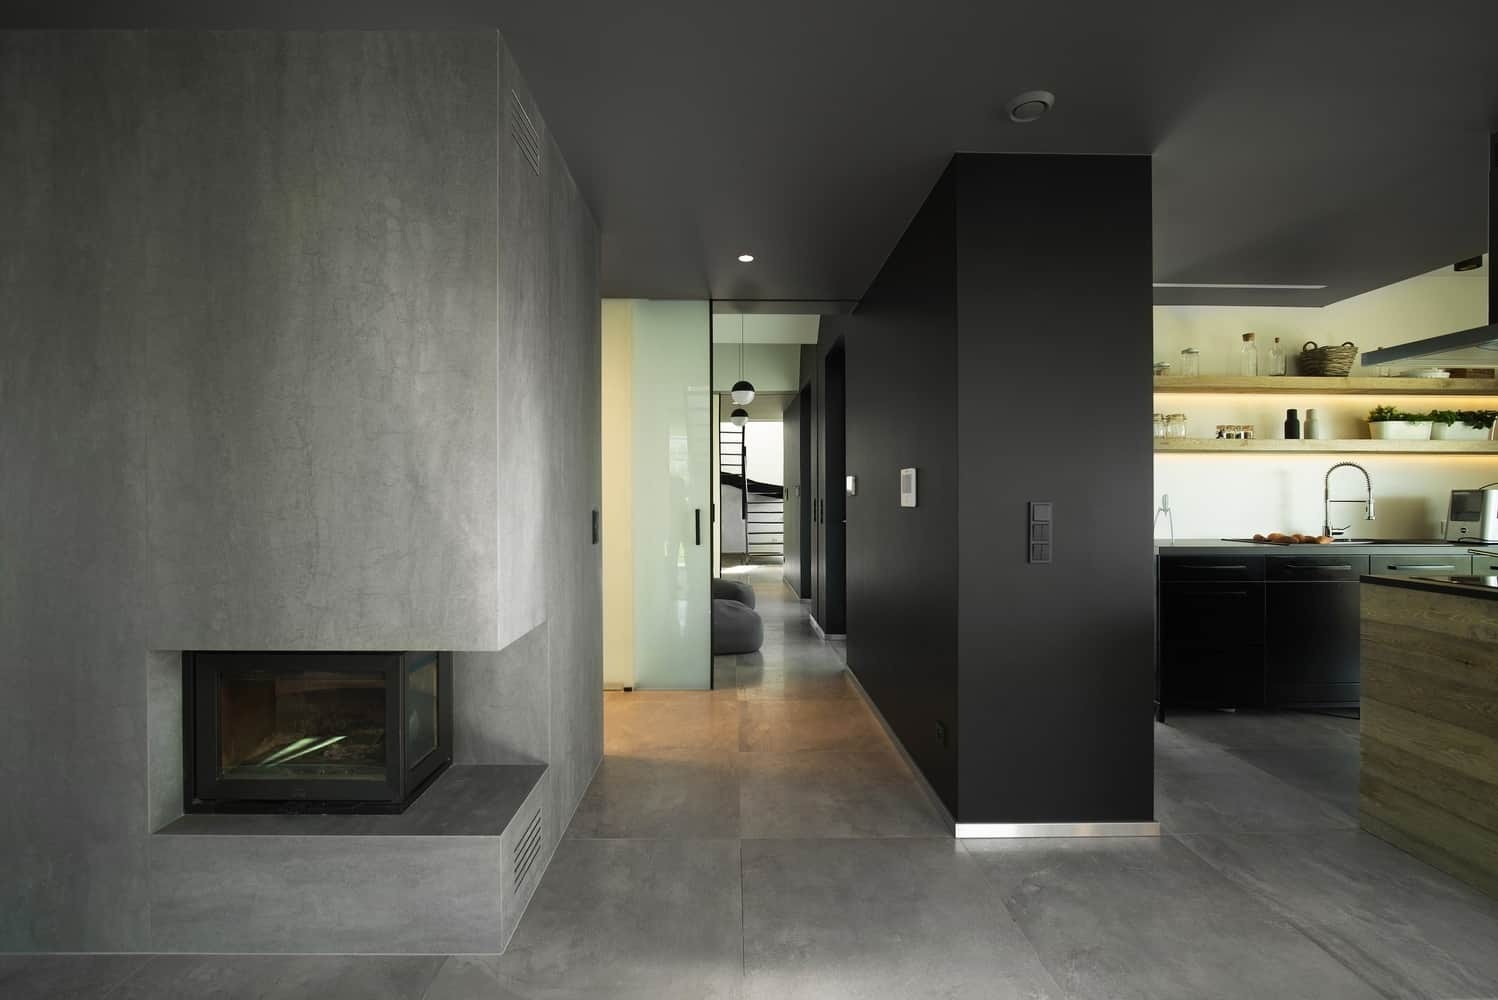 Beautiful Utter Simplicity - House With a View by doomo (15)